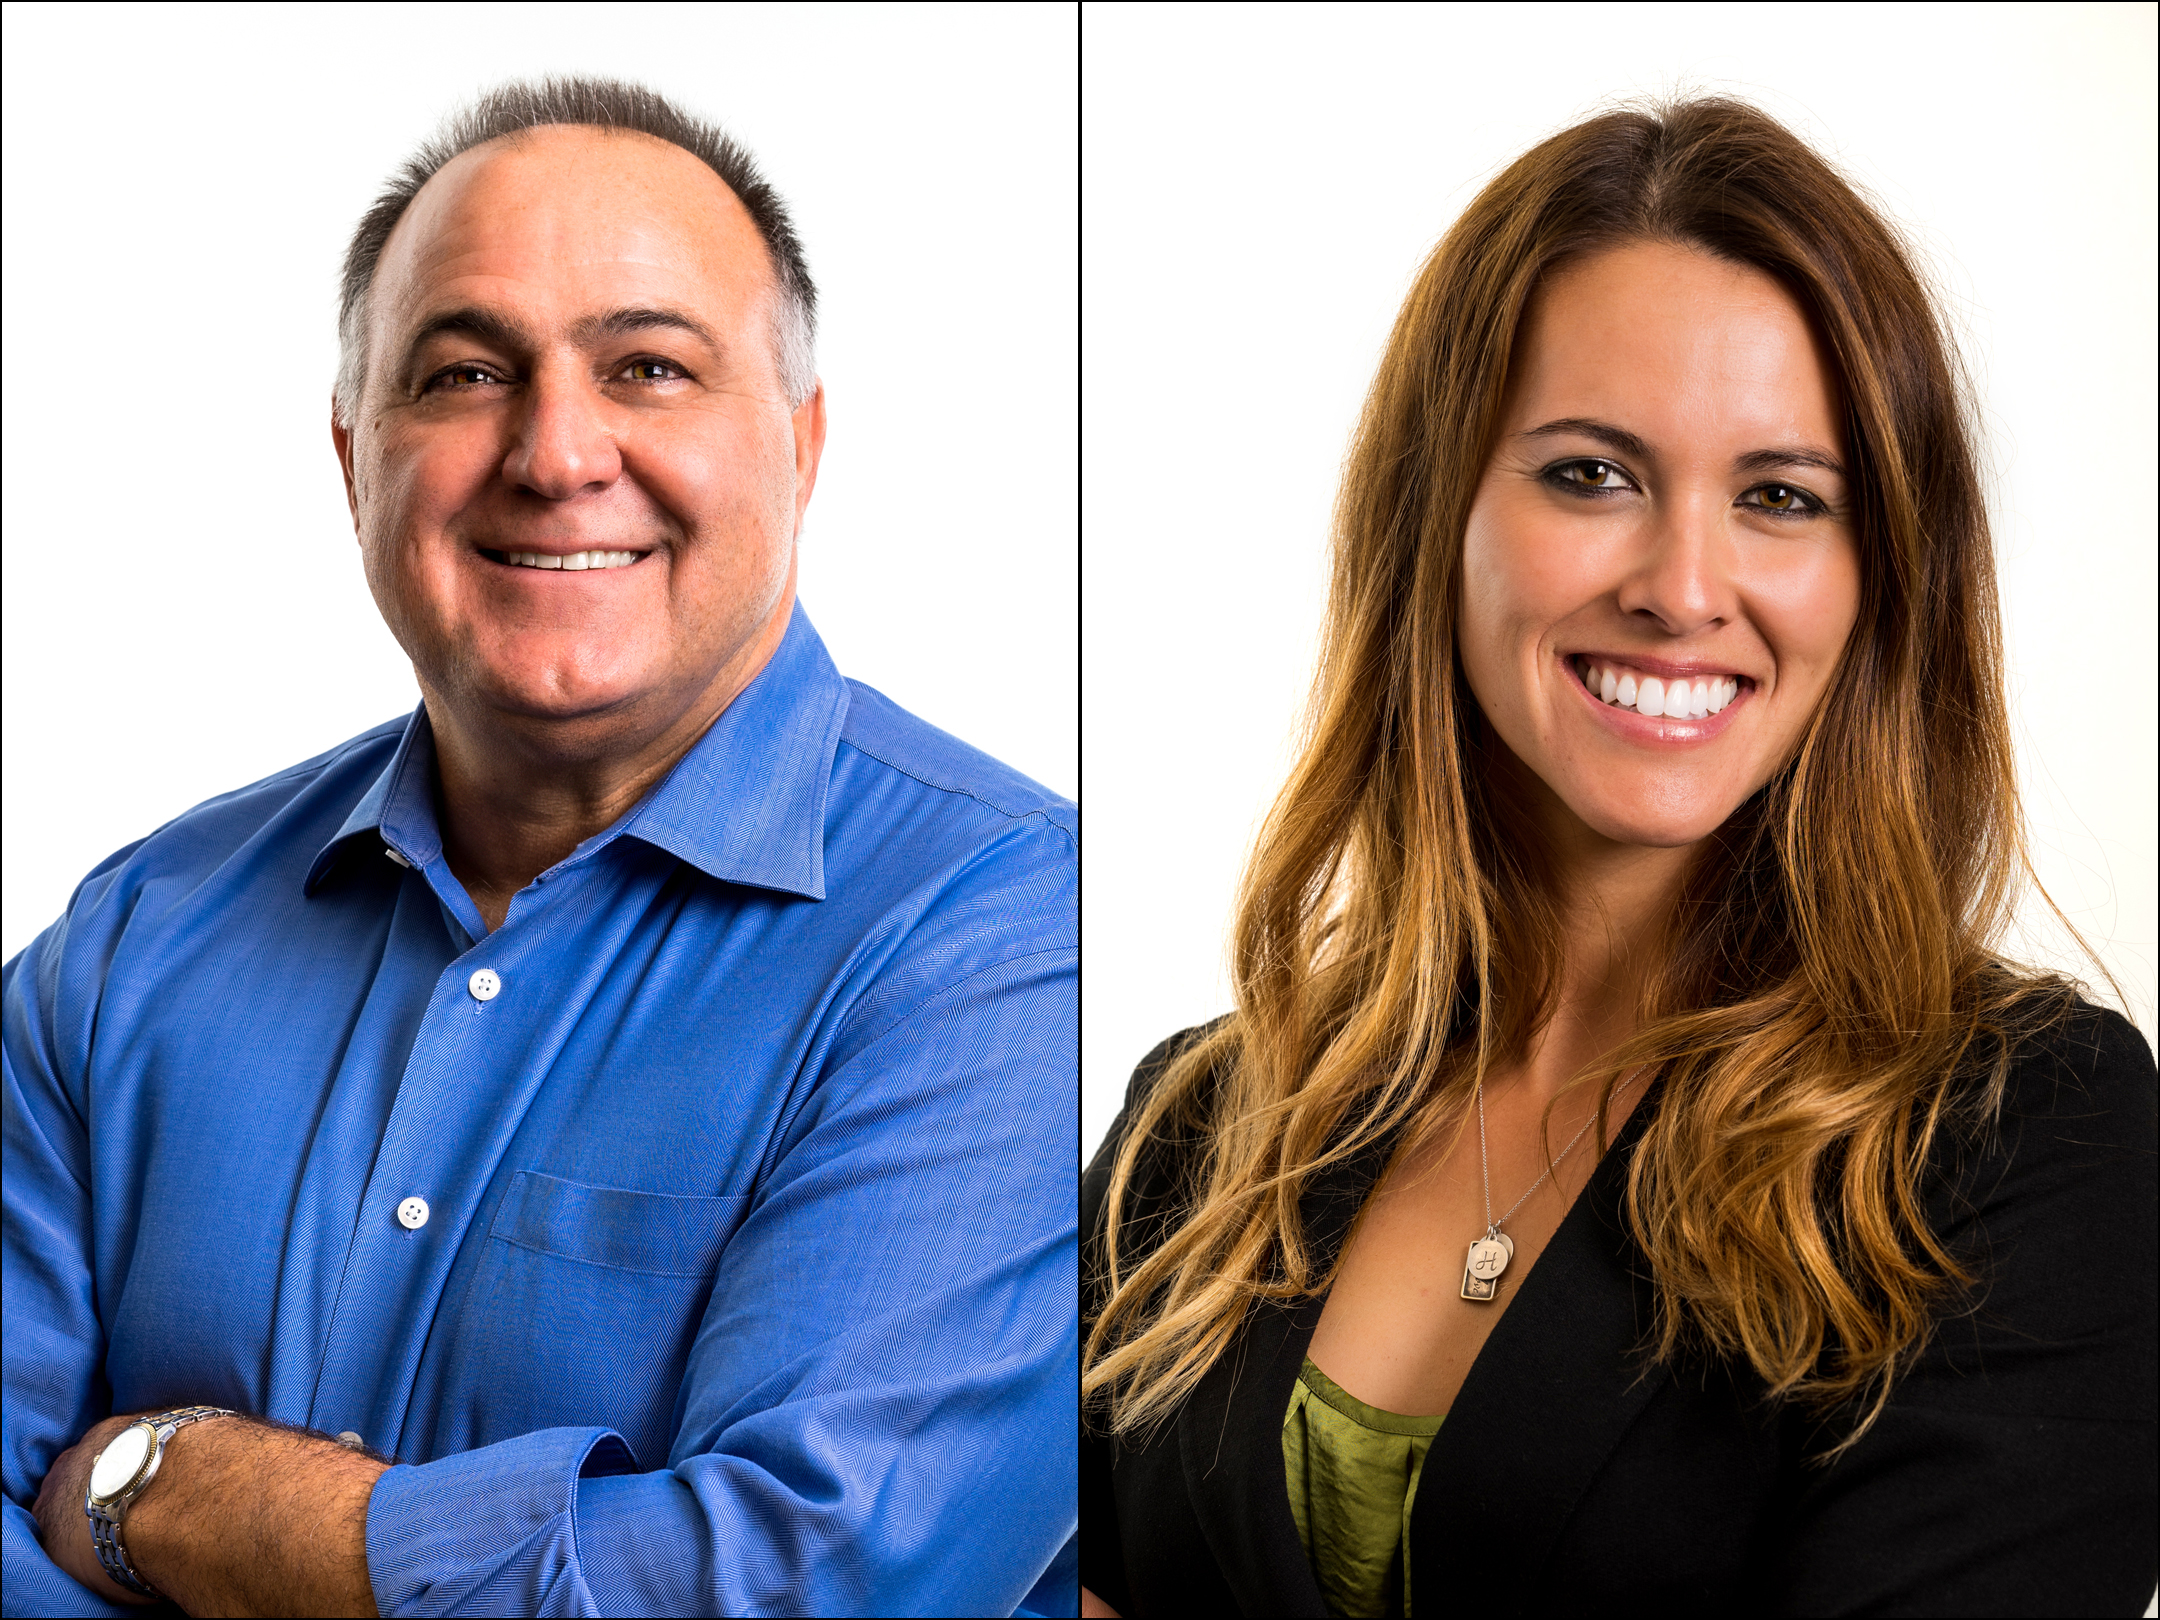 orange countya executive portraits & headshots